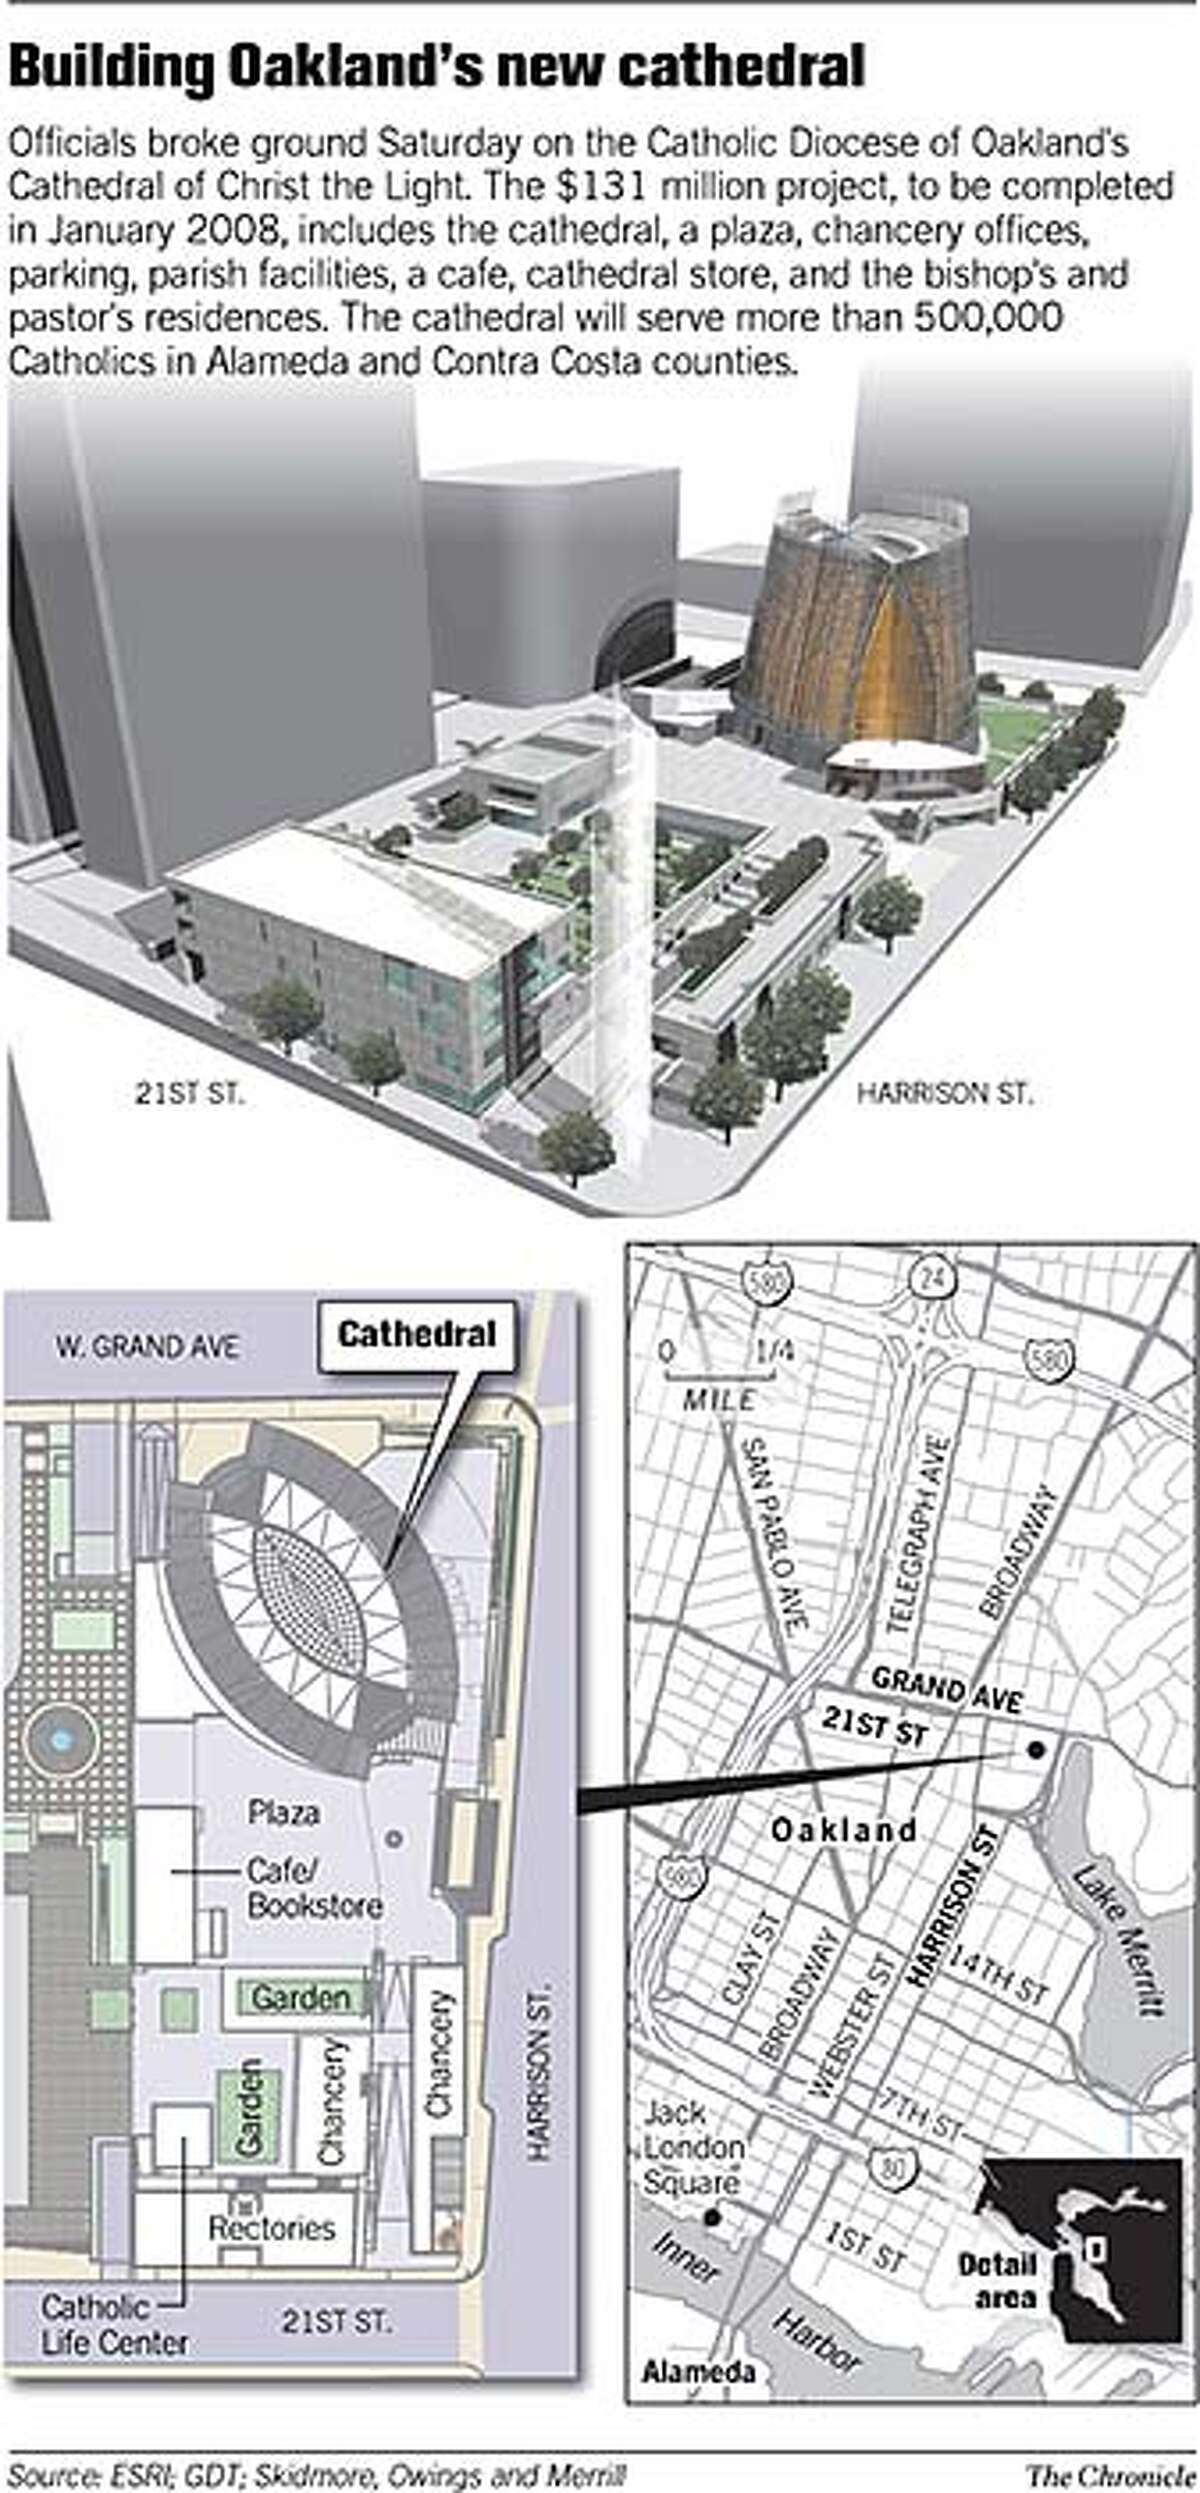 Building Oakland's New Cathedral. Chronicle Graphic